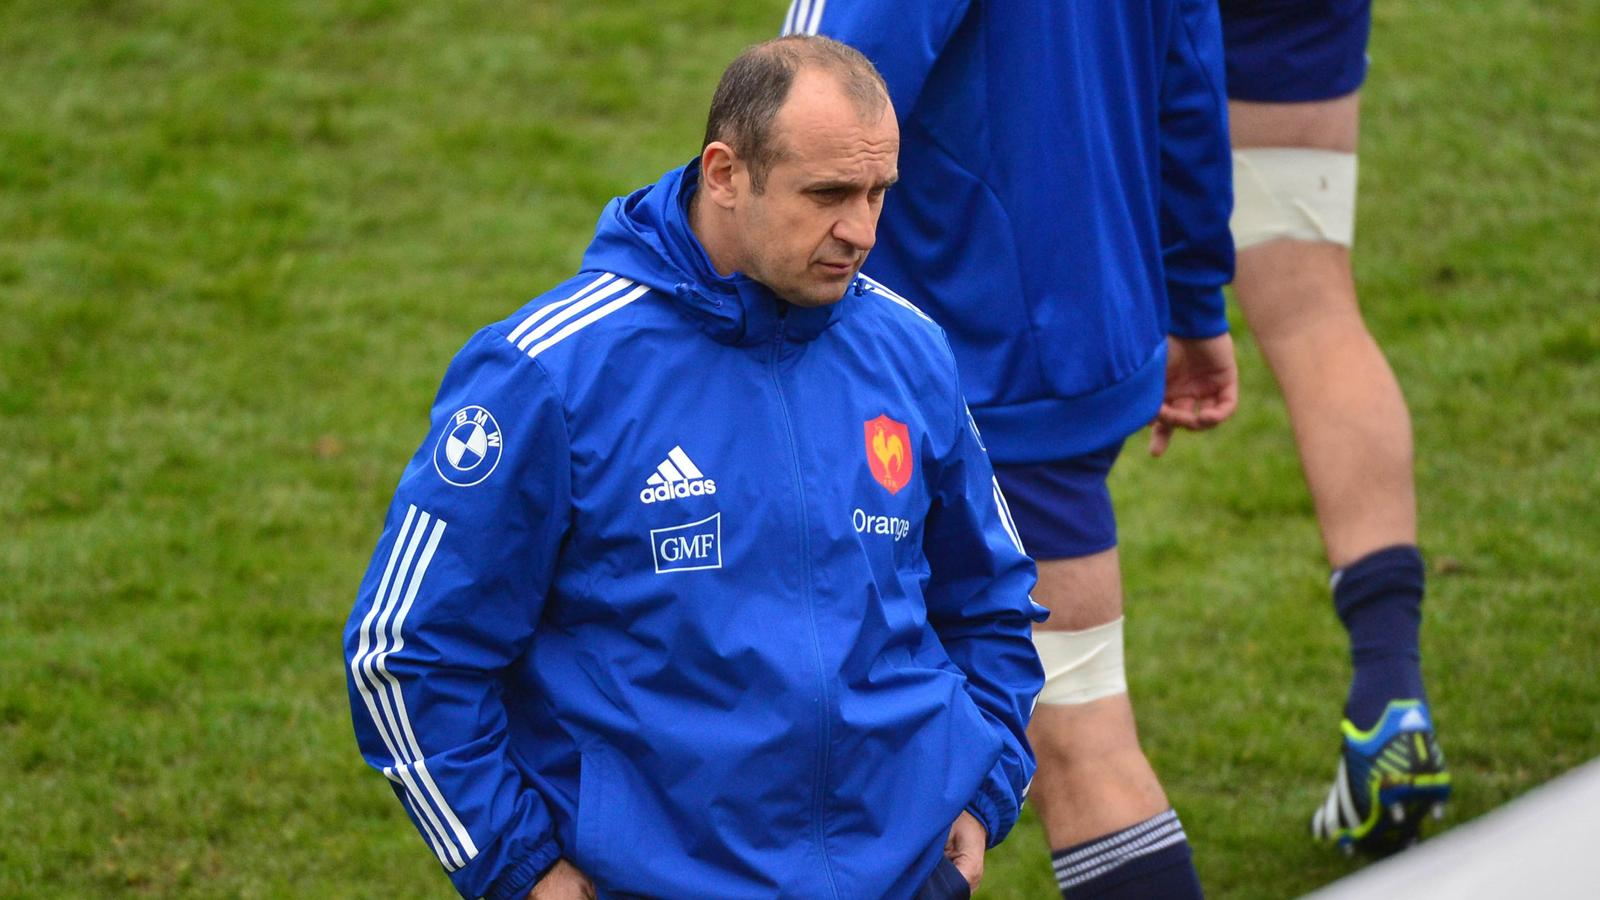 6 nations 2014 xv de france saint andr a secou ses joueurs 6 nations 2014 rugby rugbyrama - Rugby coupe des 6 nations ...